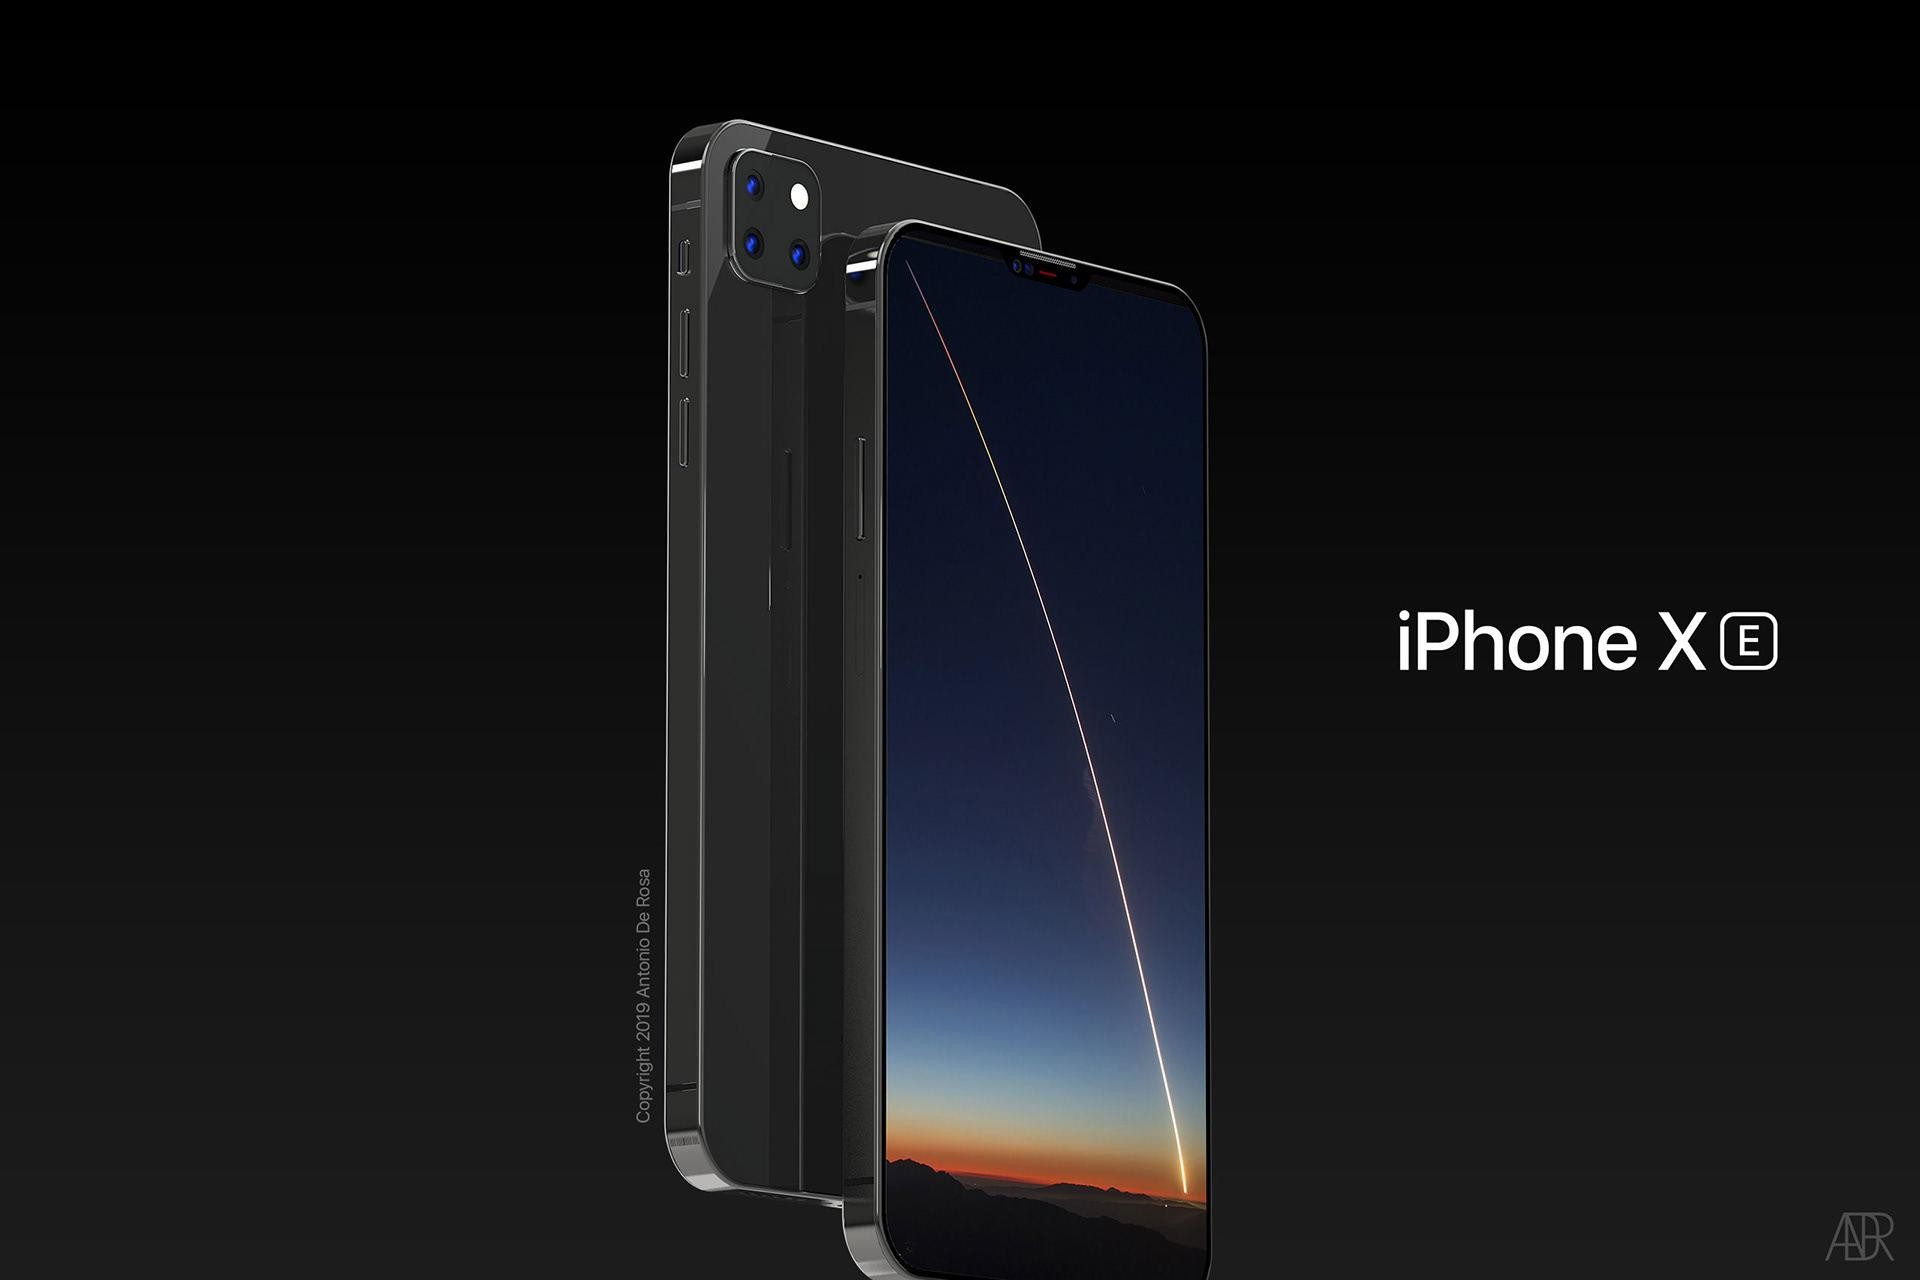 iphone-xe-concept-envisions-an-iphone-se-successor-with-a-notch-and-all-video-524638-9.jpg